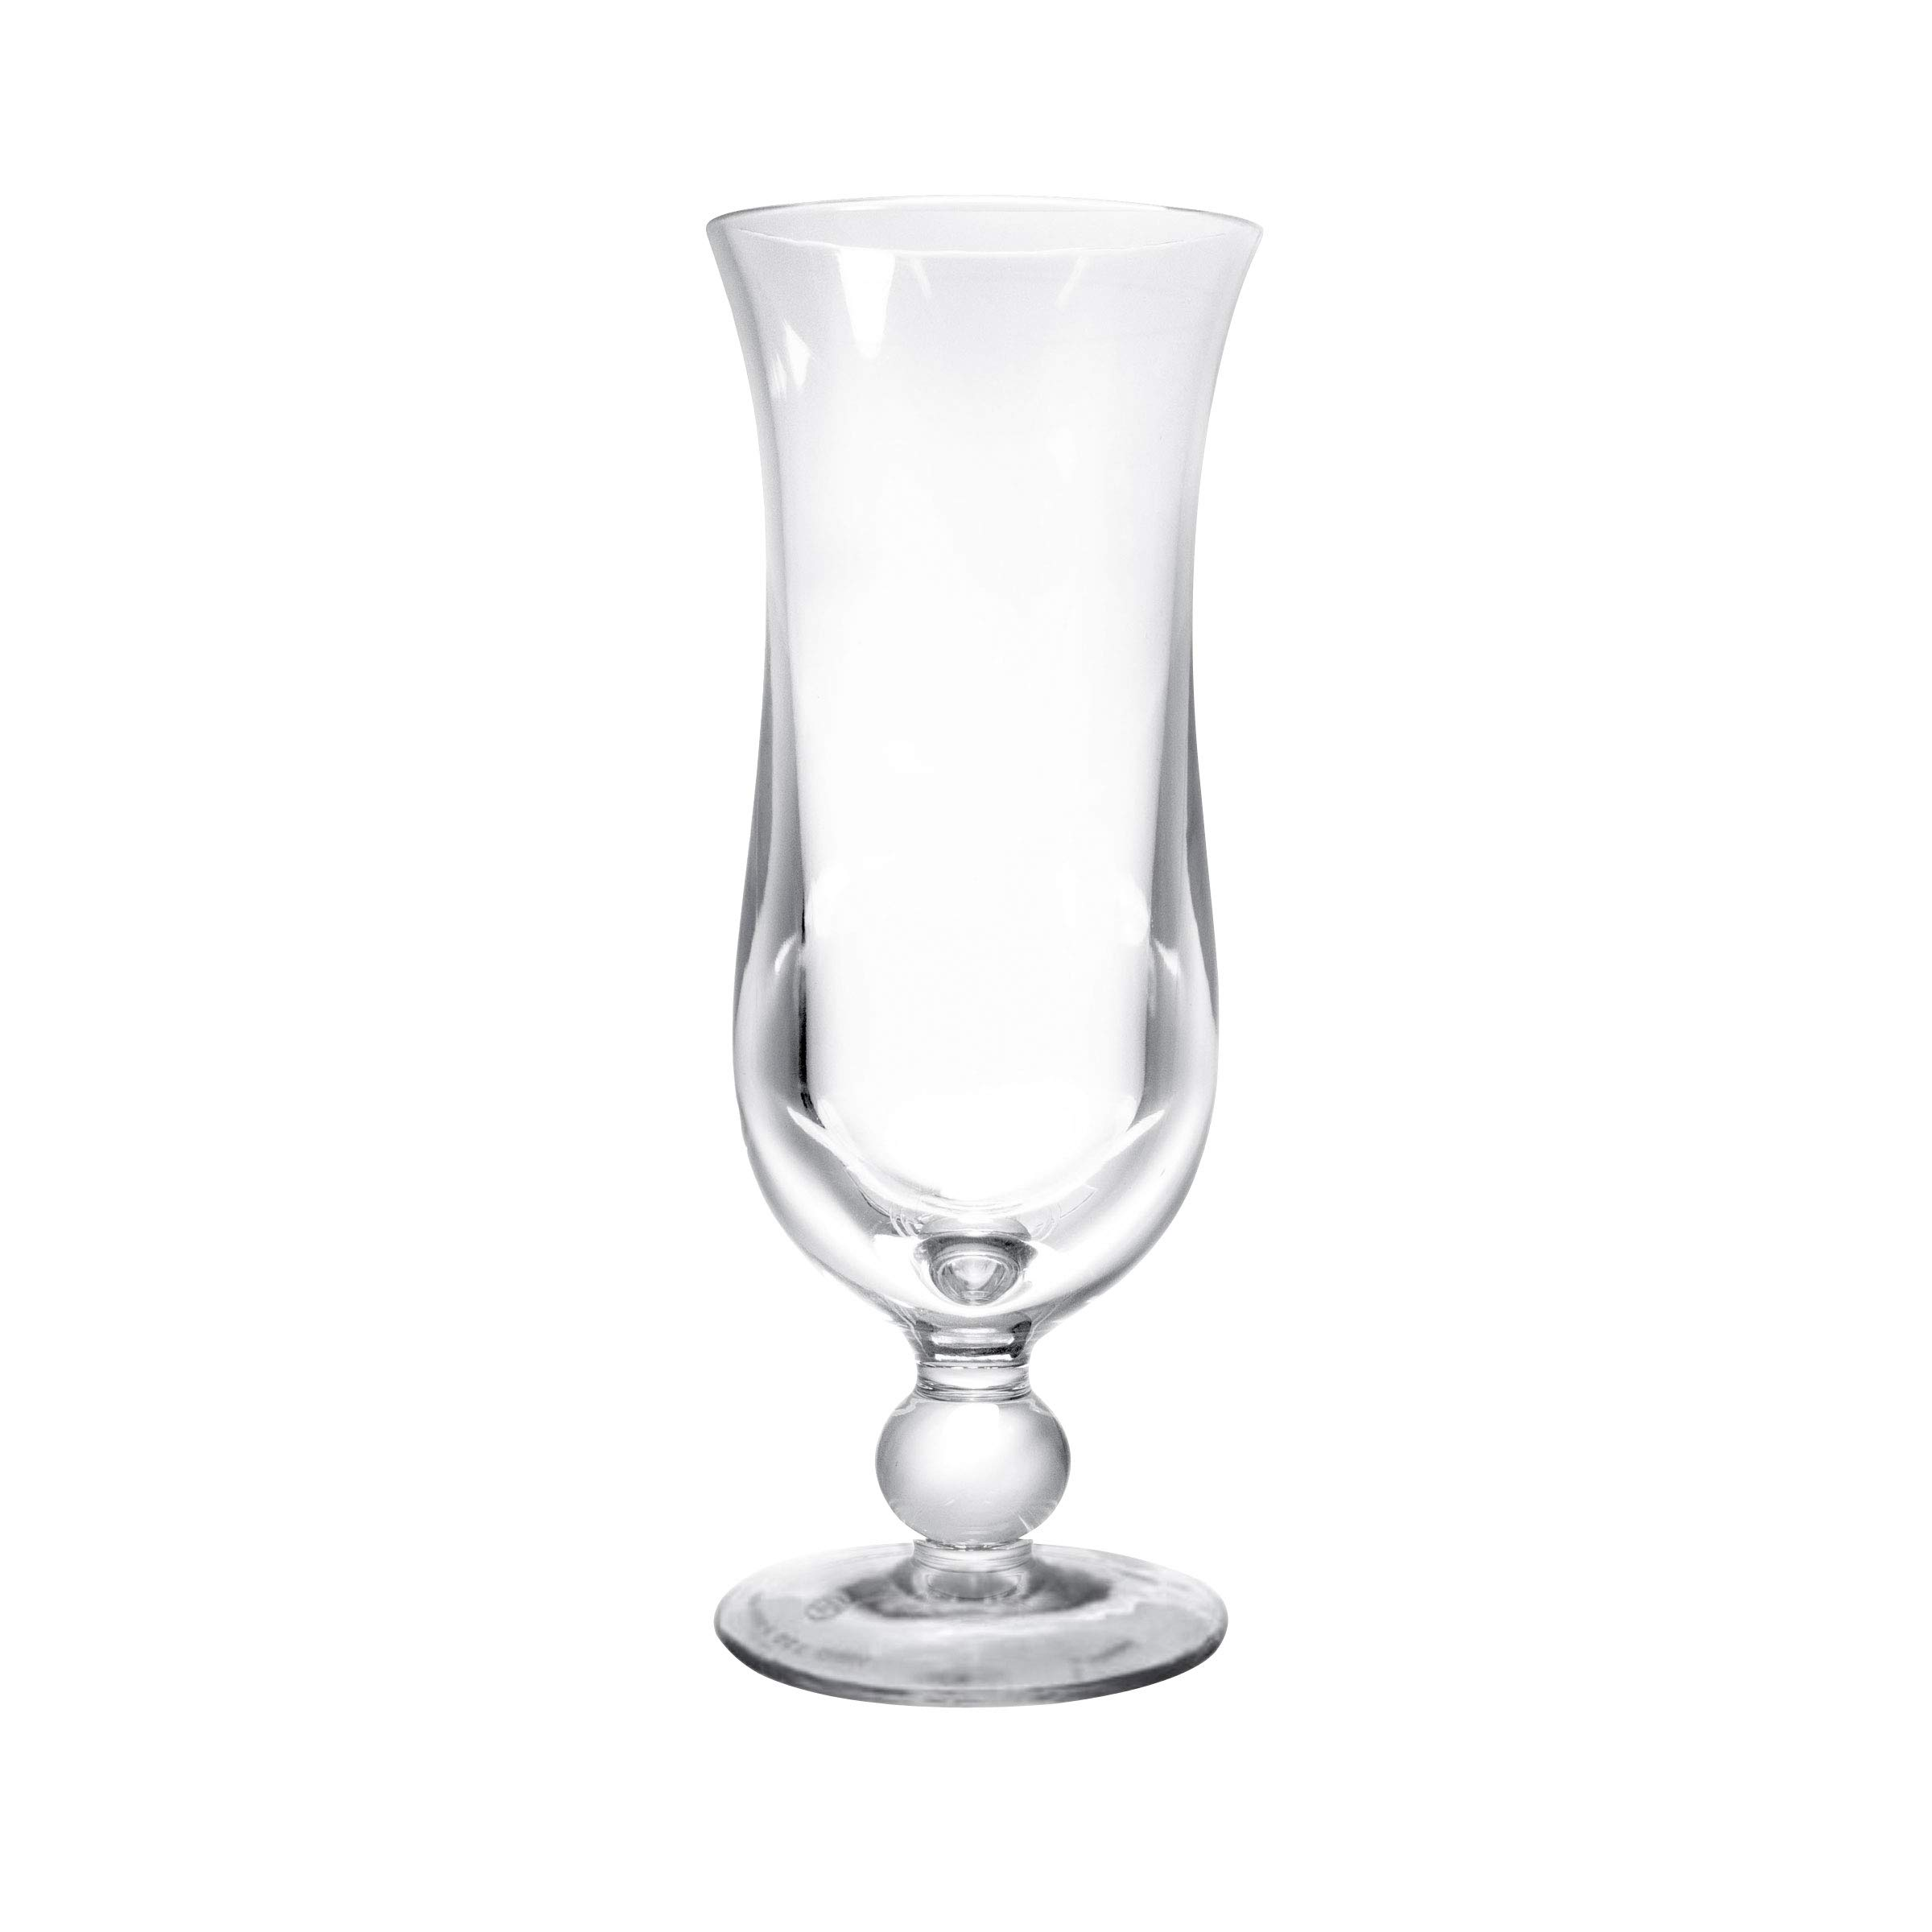 Elite Global Solutions DW11PC-CL Hurricane Glass, 3'' Dia. x 8'' h, Polycarbonate, Clear Polycarbonate (Pack of 24)